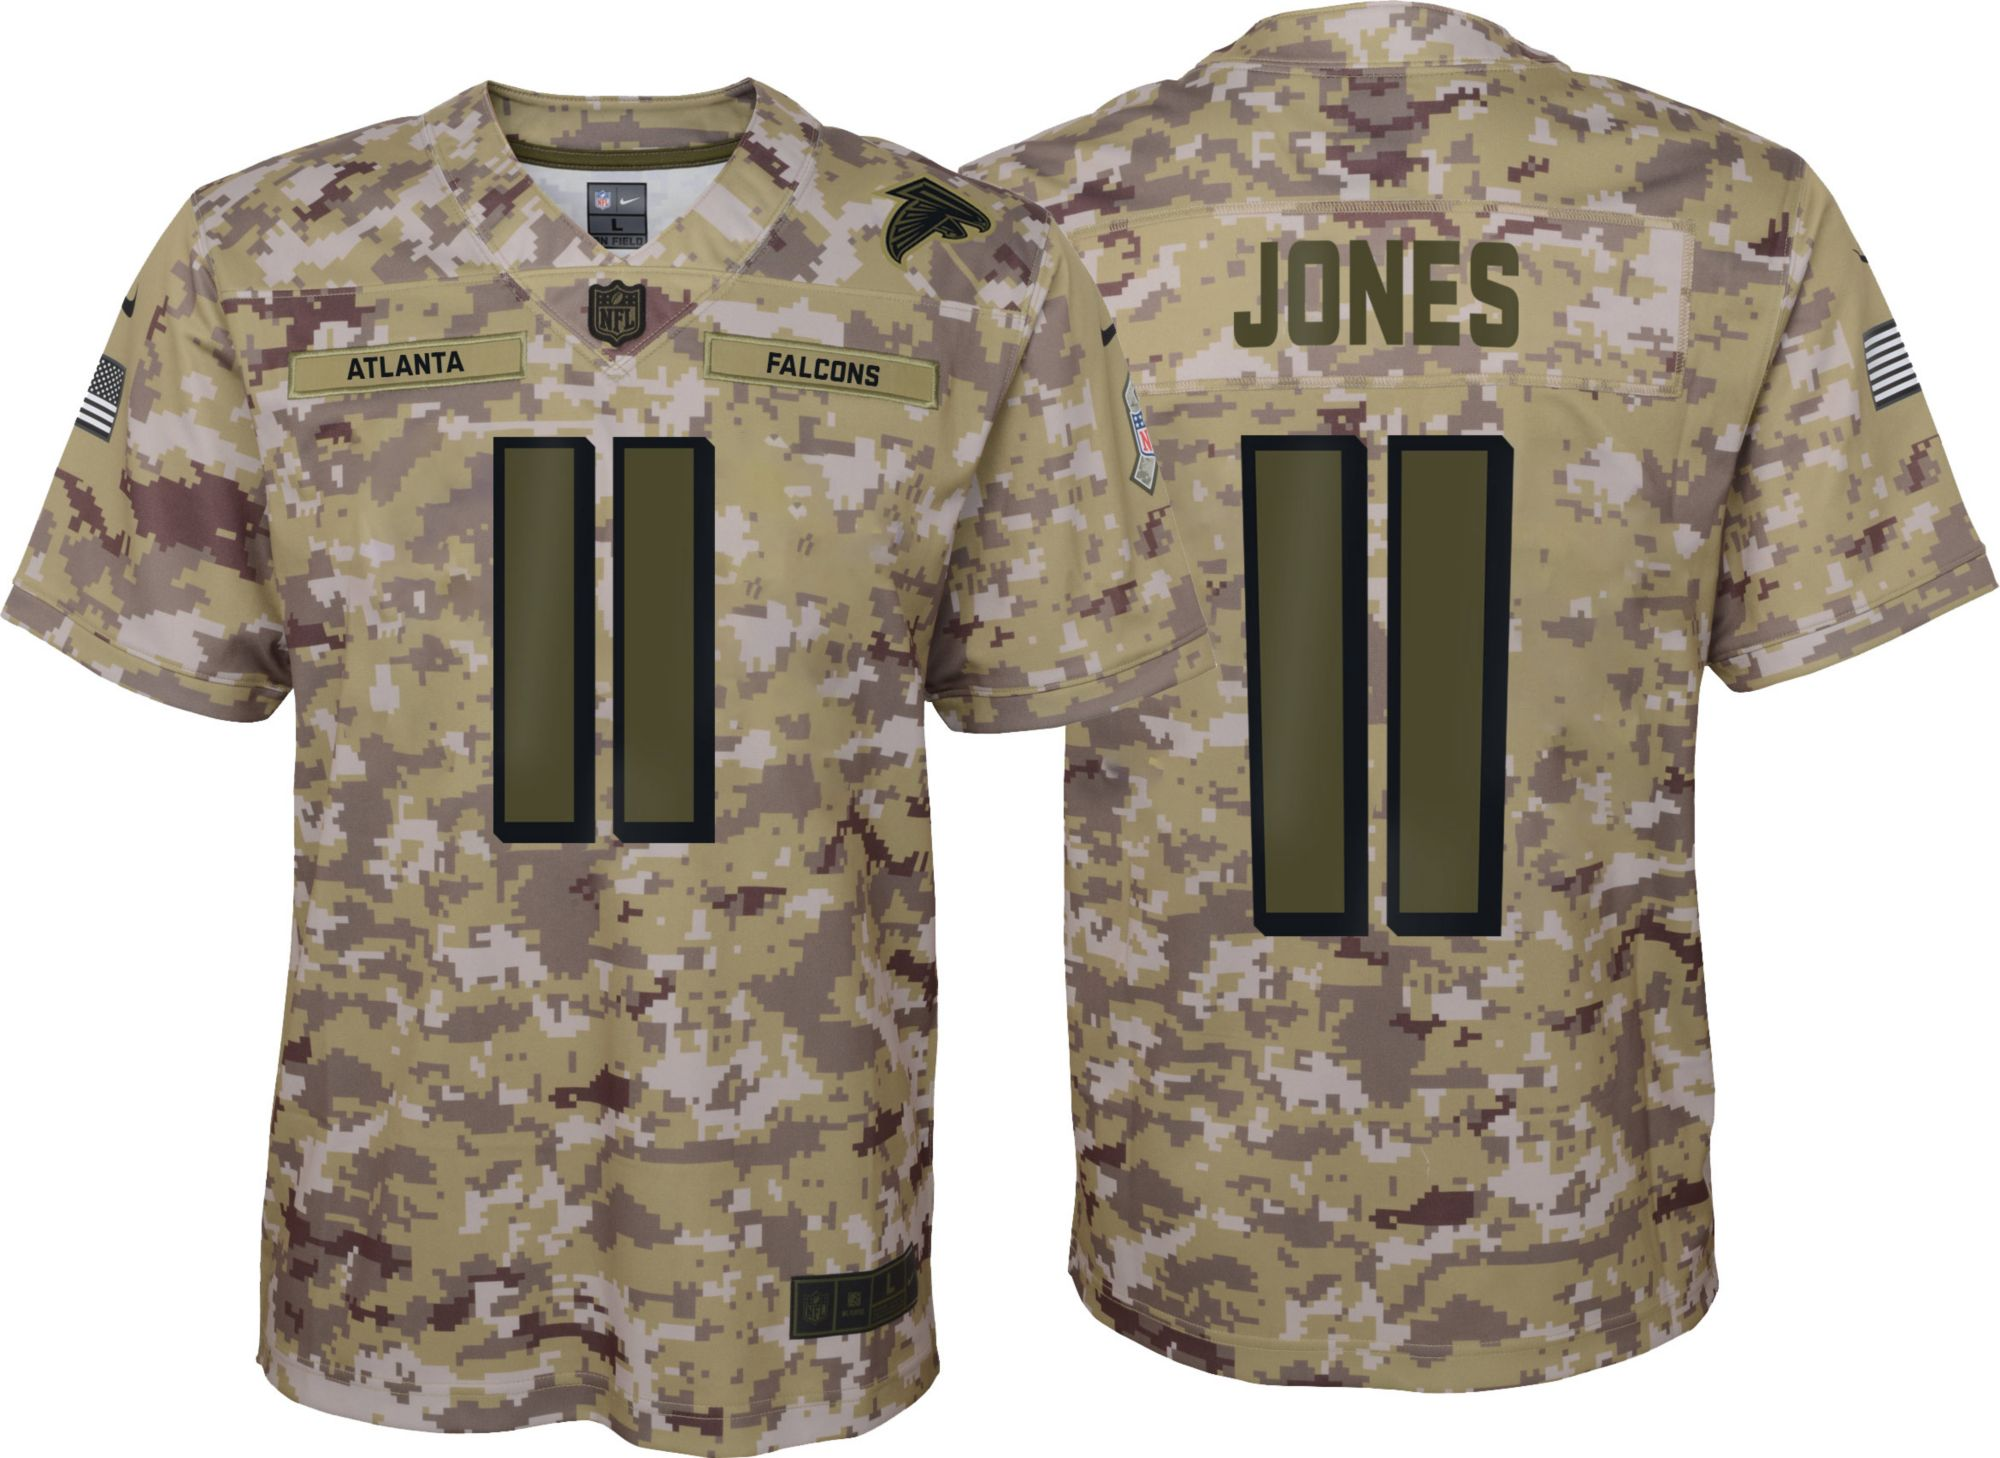 Discount Nike Youth Salute to Service Atlanta Falcons Julio Jones #11